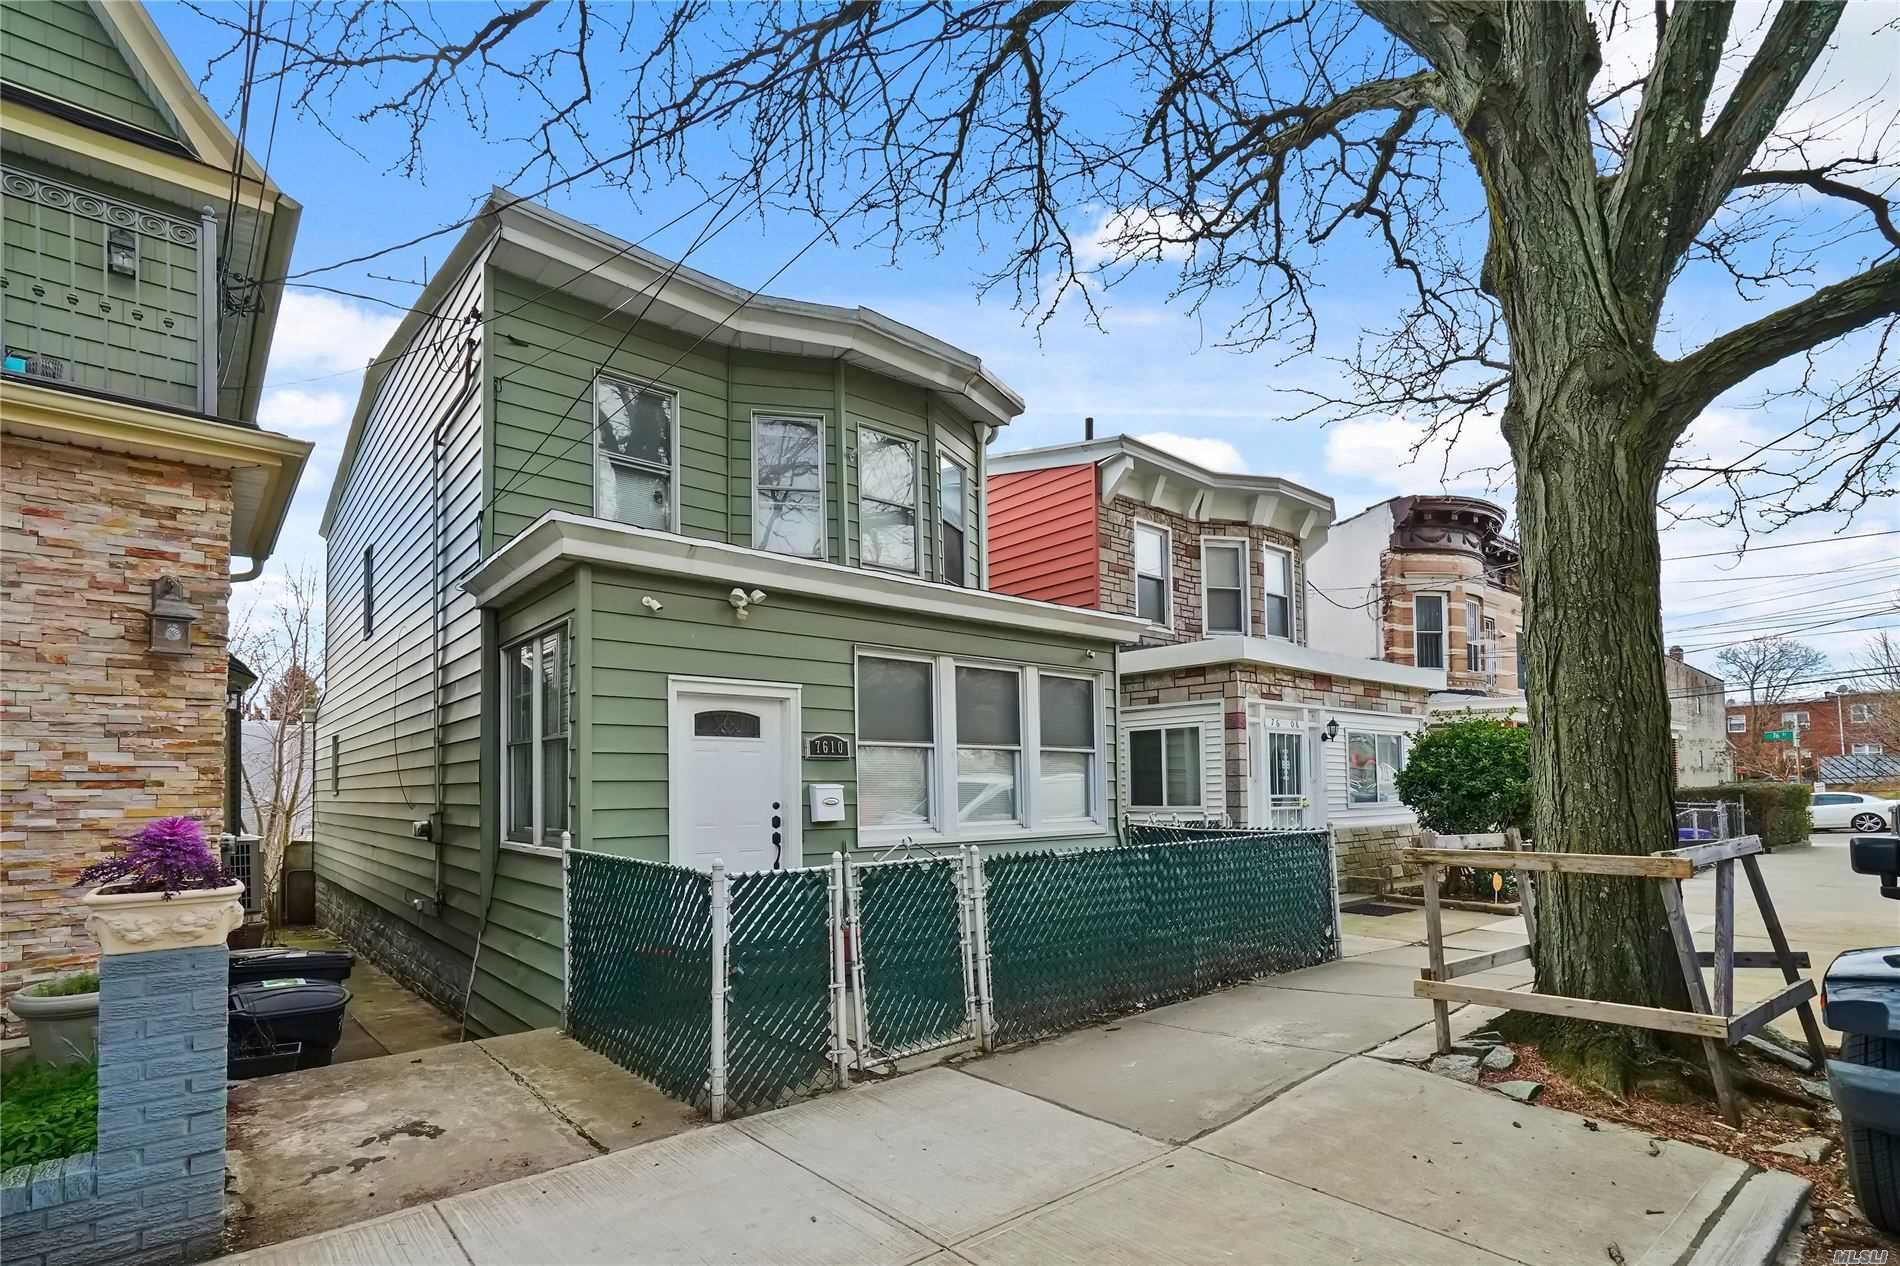 76-10 85th Road, Woodhaven, NY 11421 - MLS#: 3208447